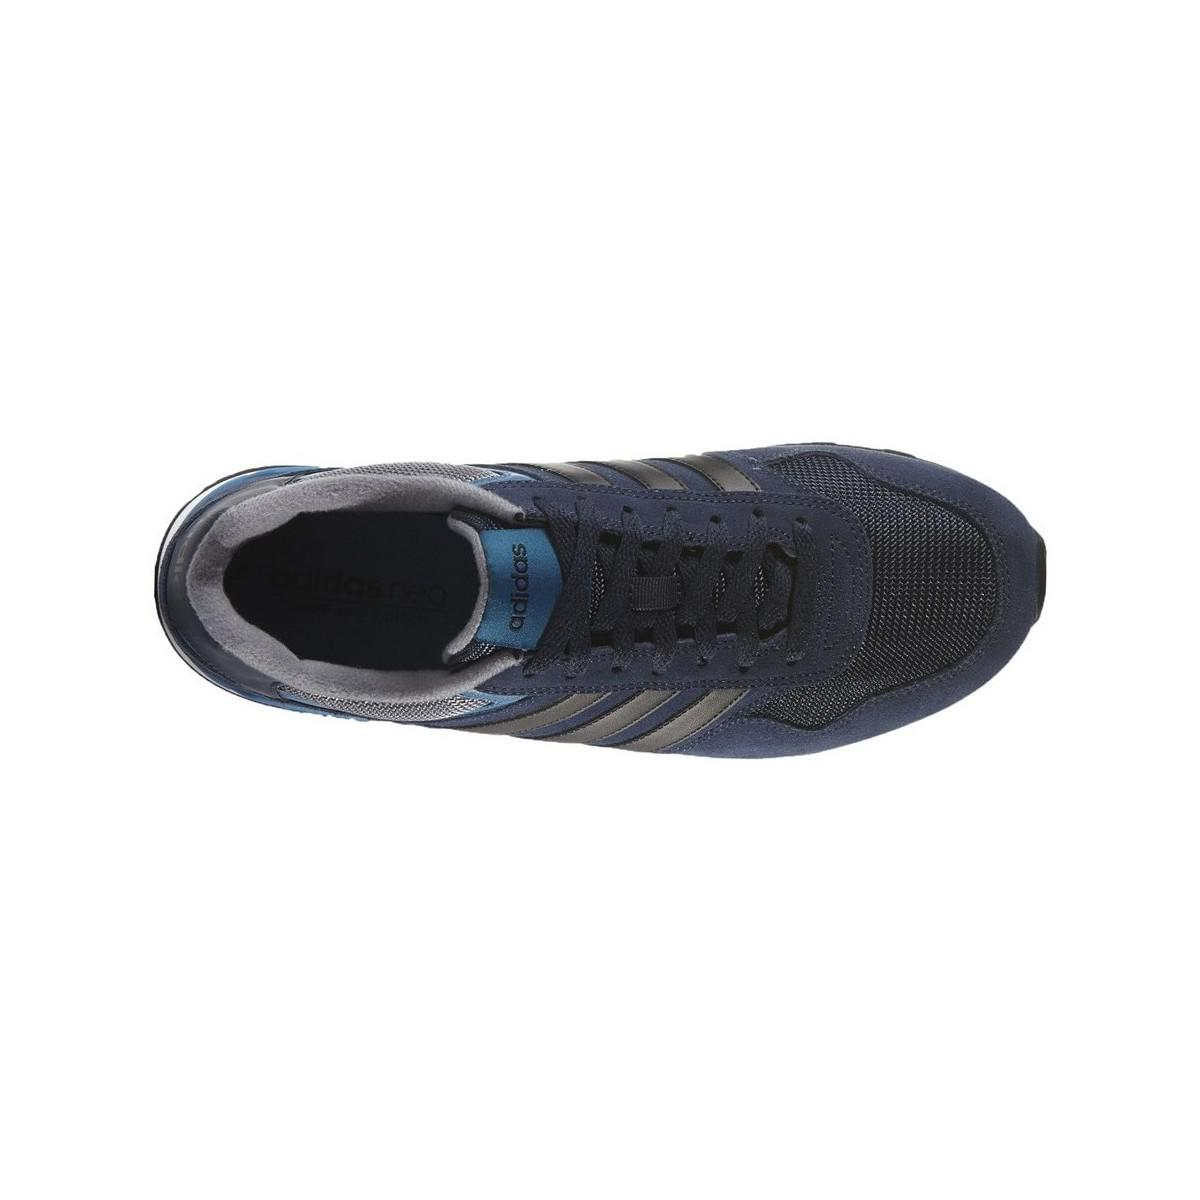 adidas 10 K Men's Shoes (trainers) In Black for Men